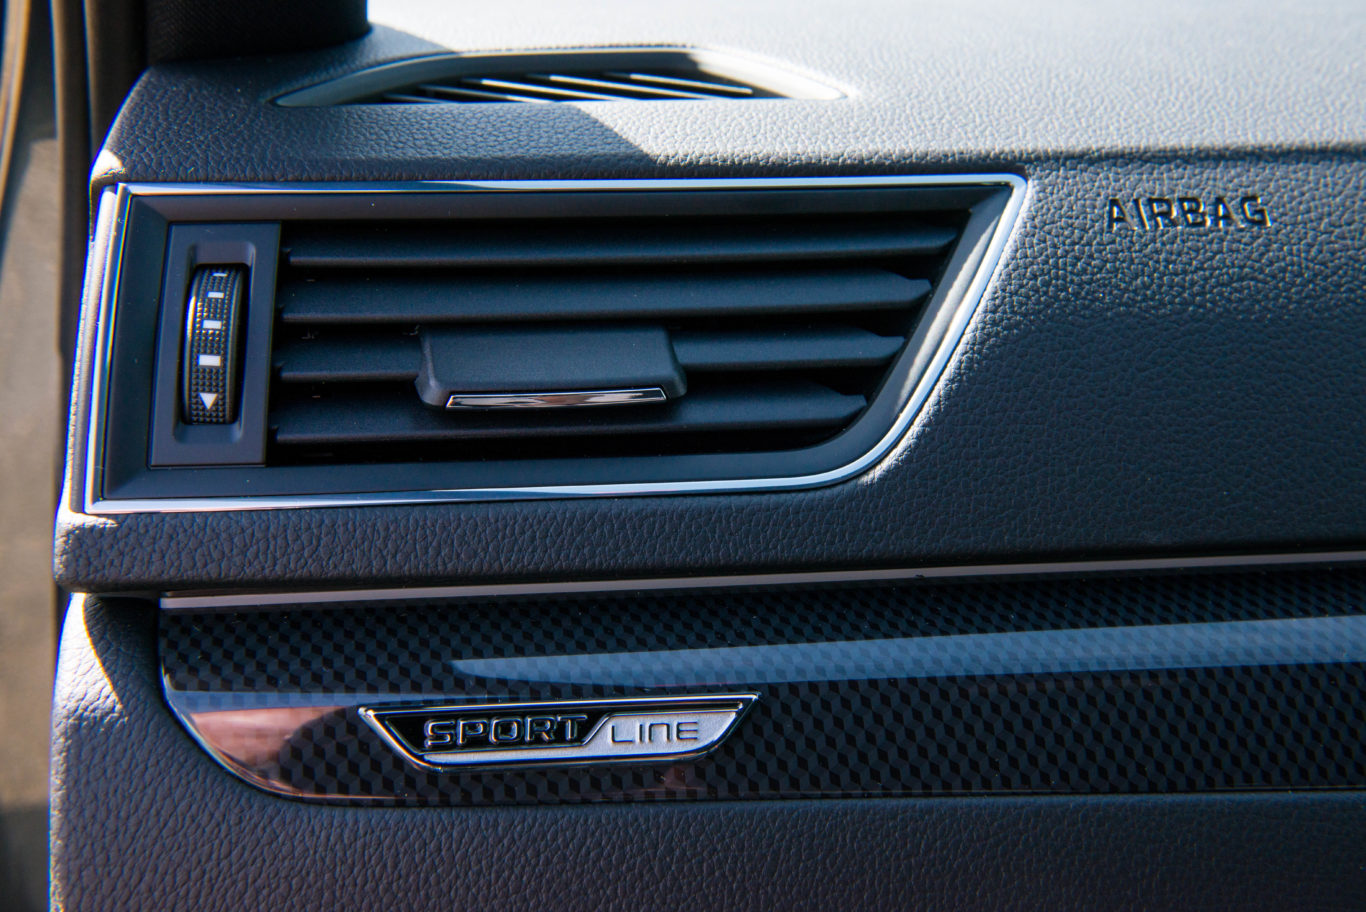 Neat Sportline badges feature throughout the cabin